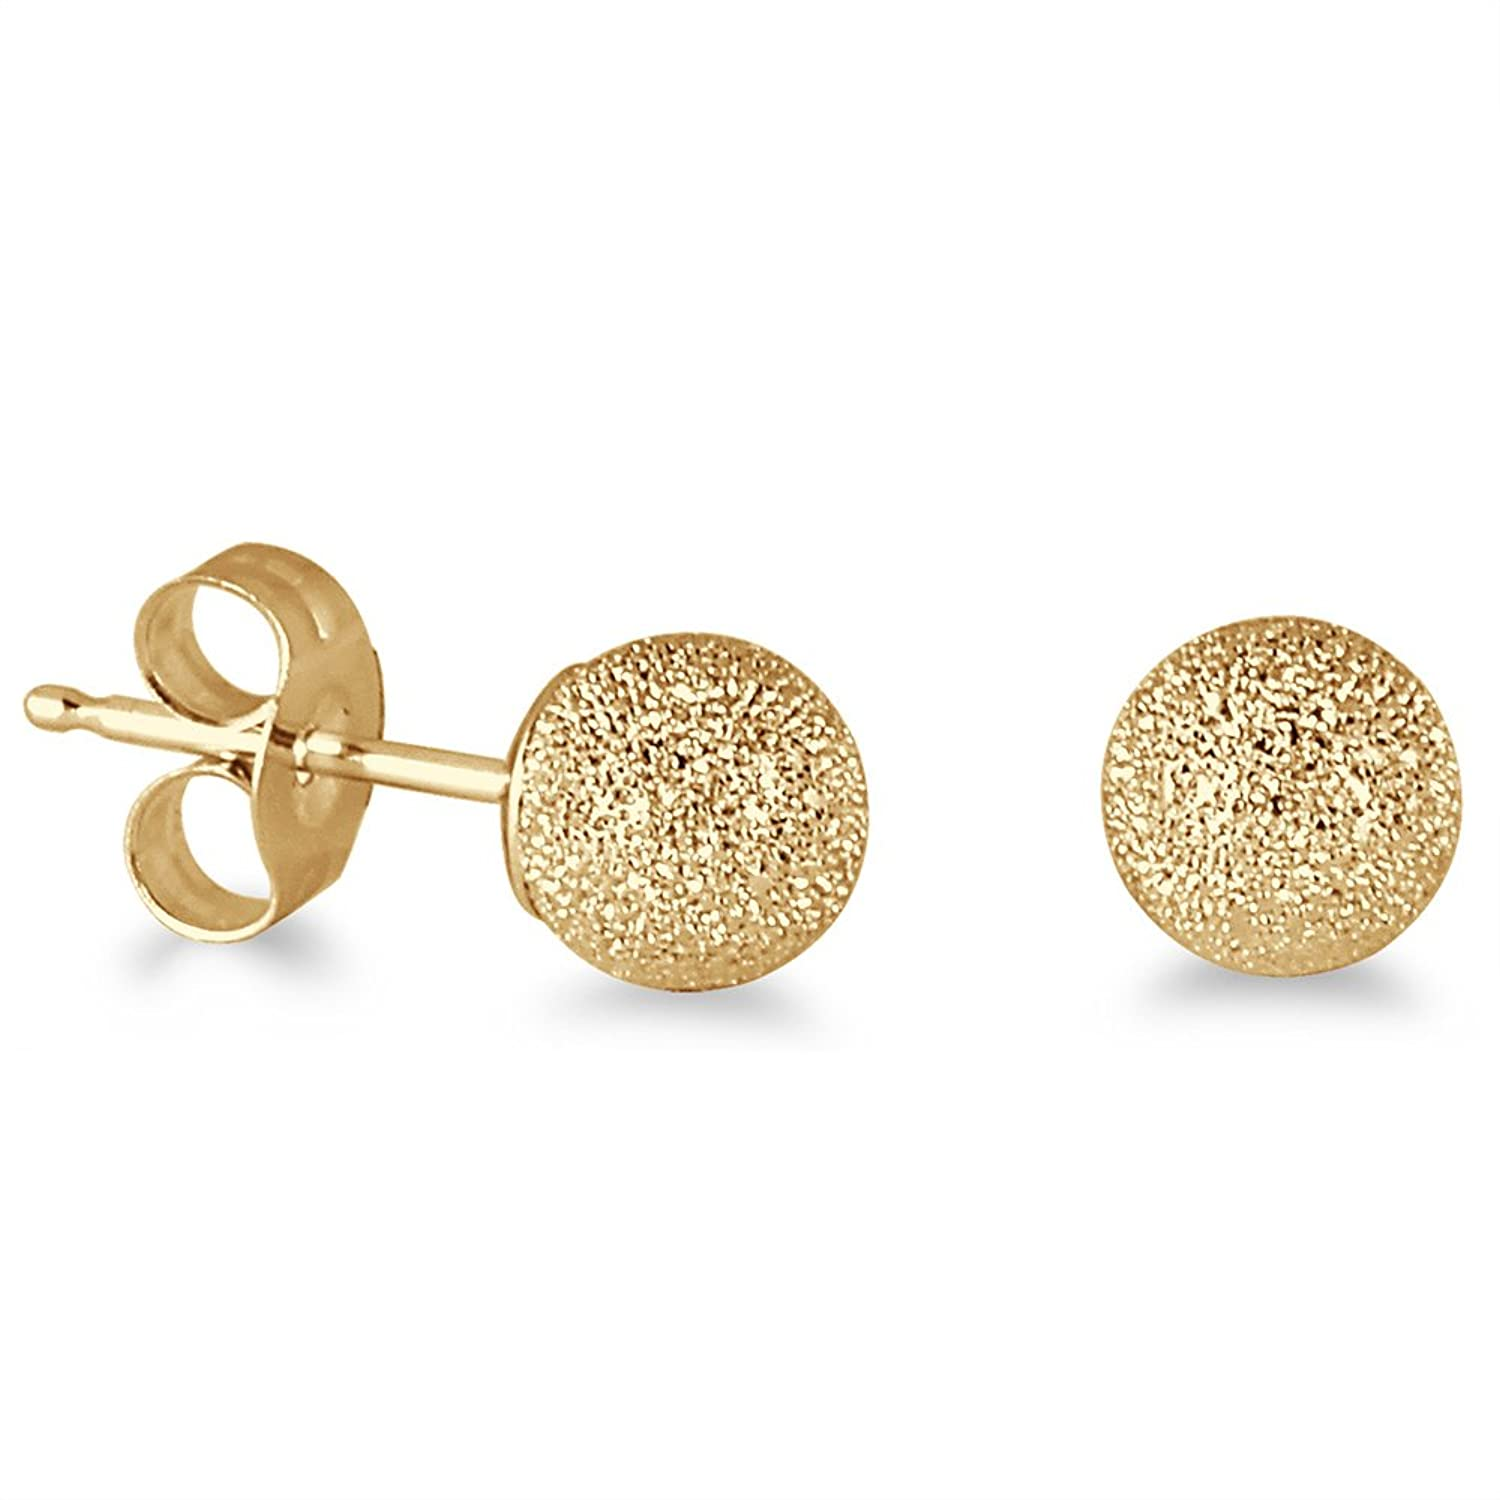 Amazon 14K Yellow Gold 5mm Laser Cut Ball Stud Earrings Jewelry